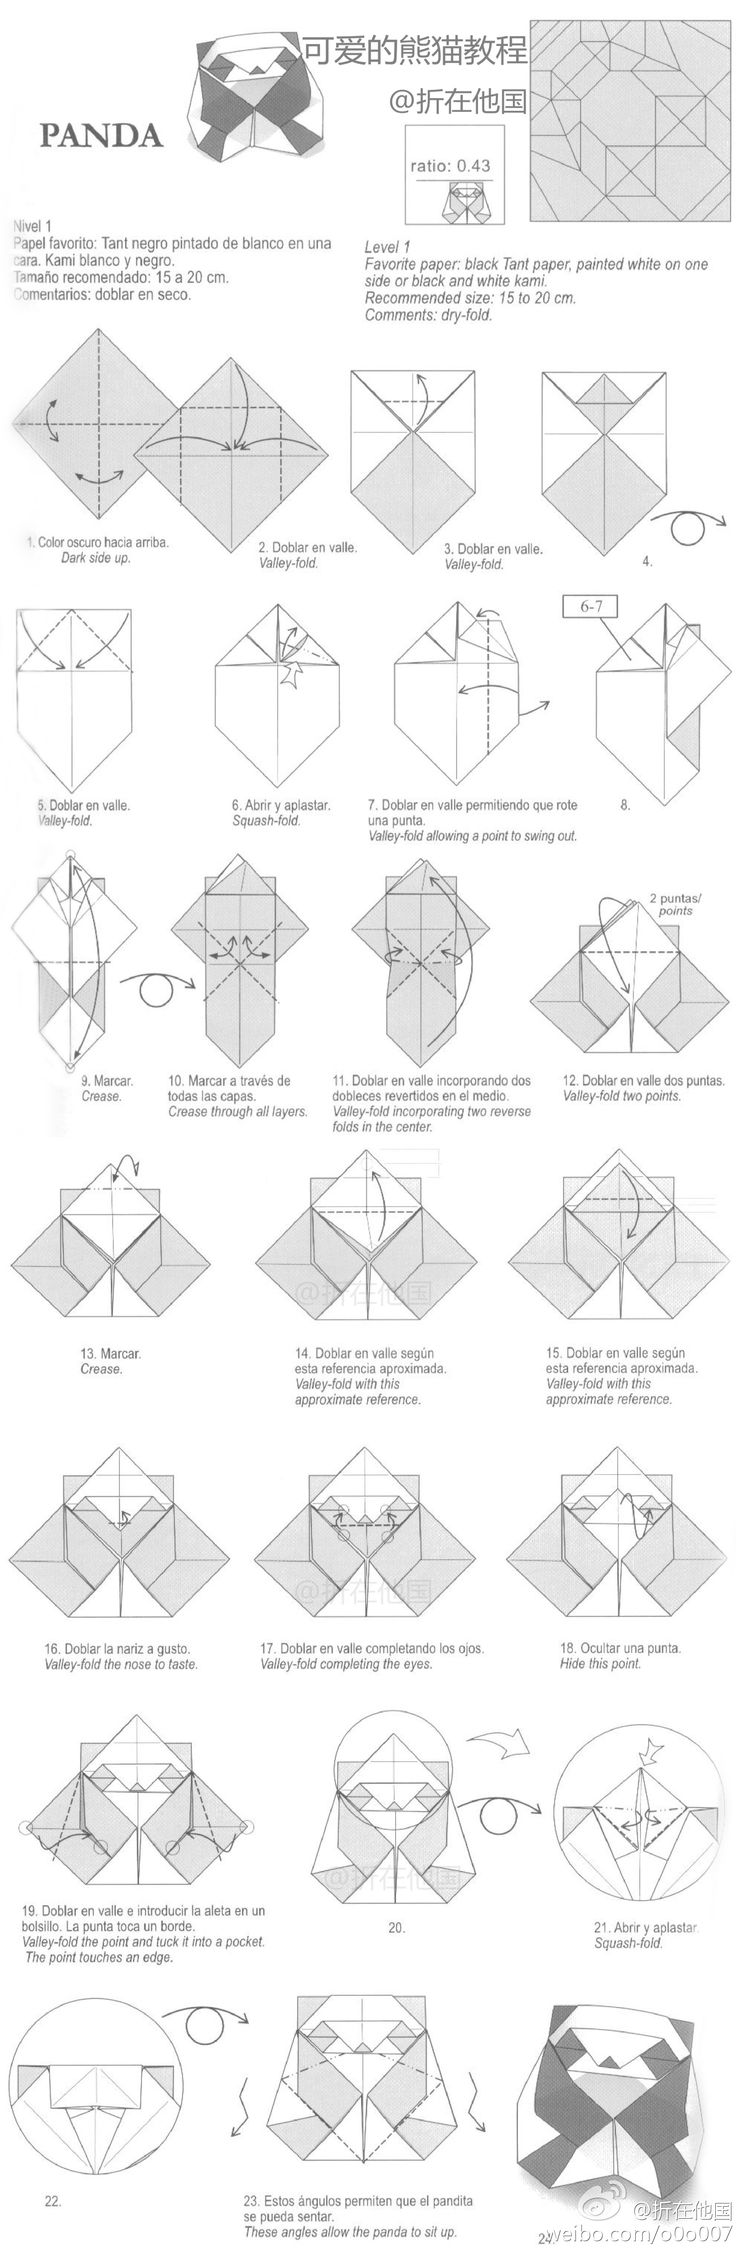 best origami ideas images on pinterest day care crafts and